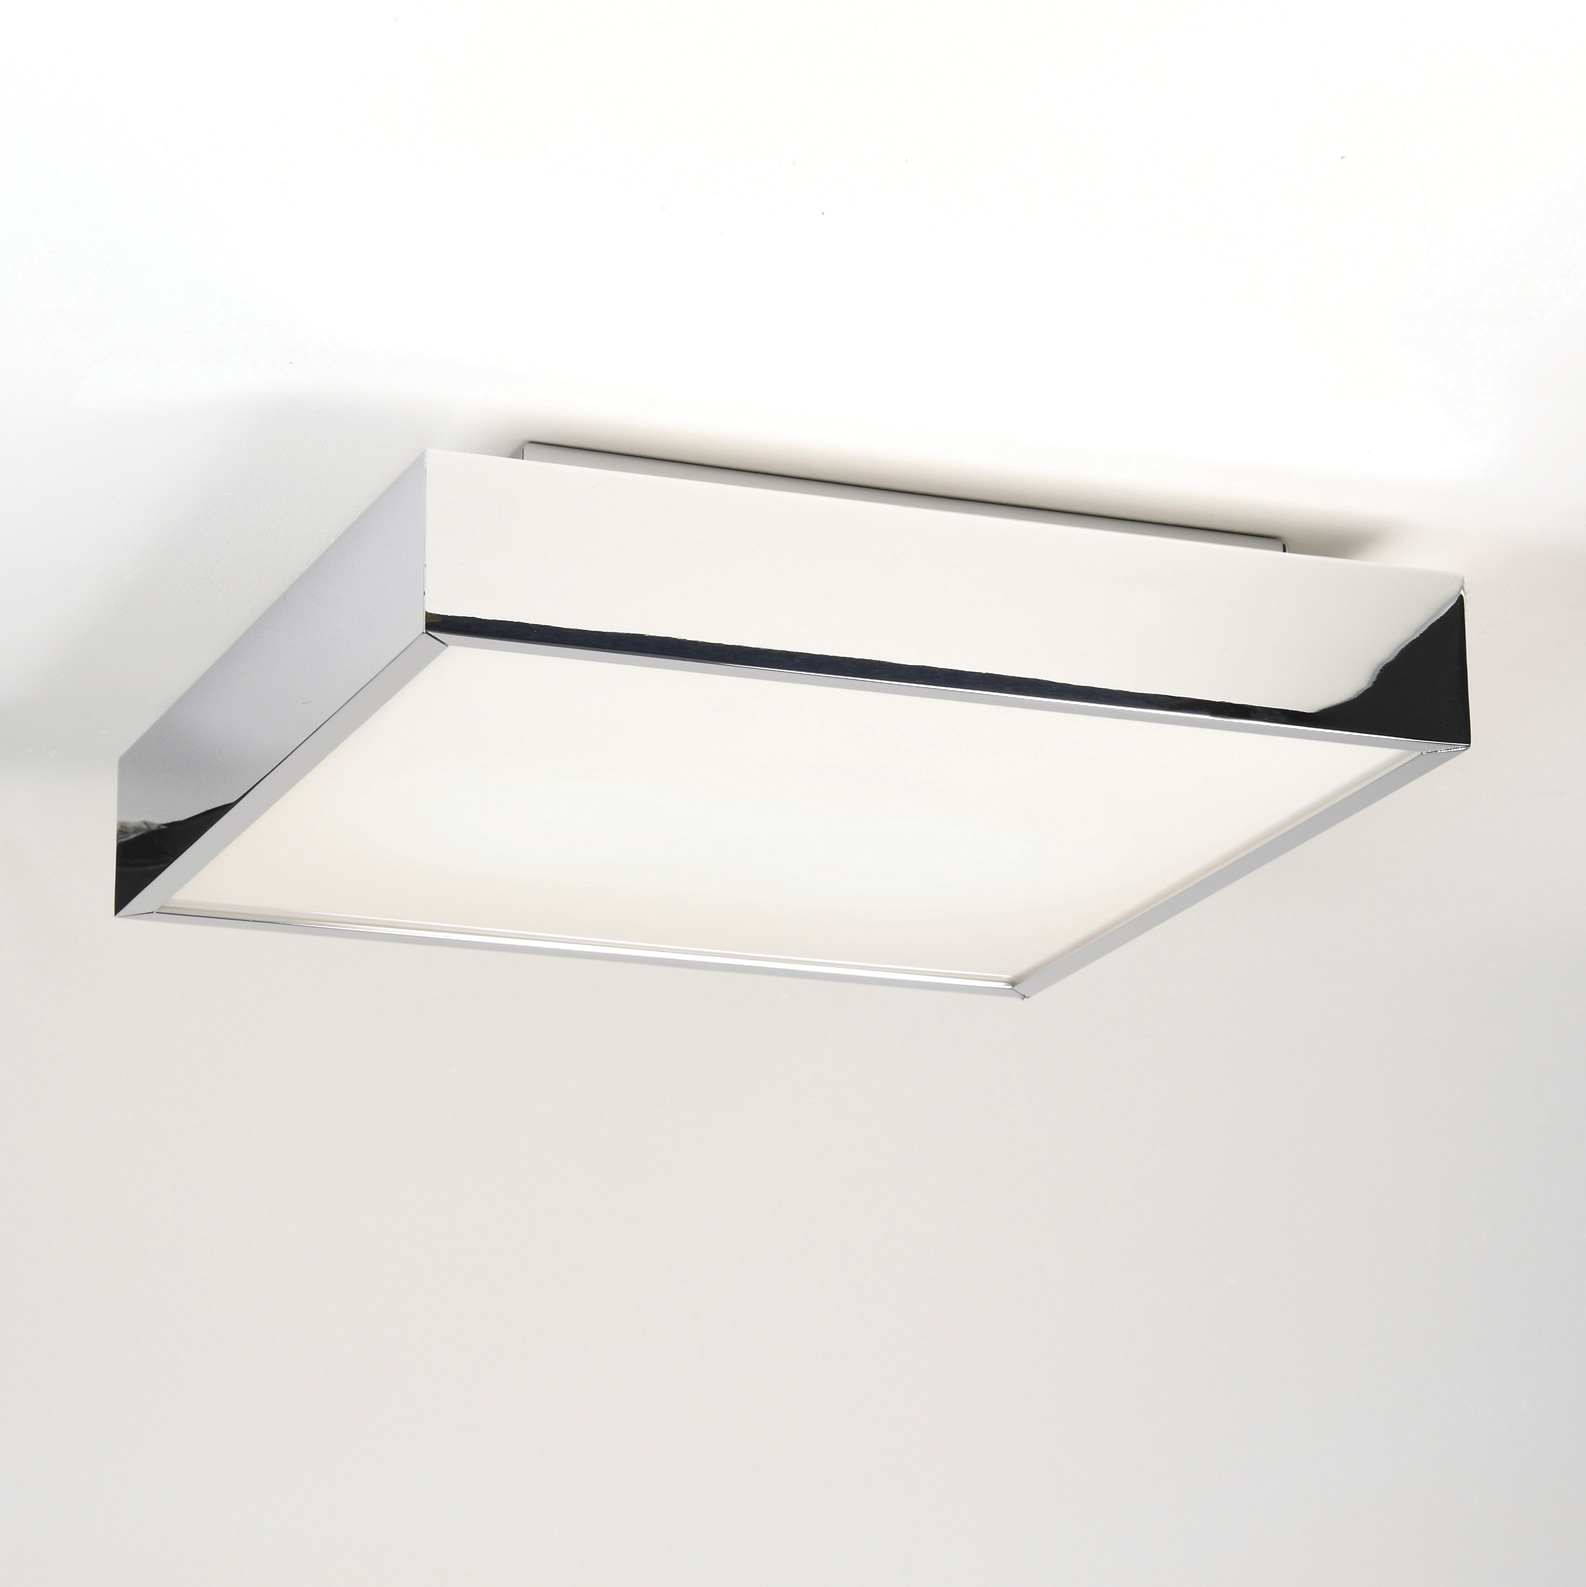 led square bathroom ceiling light 17 7w polished chrome ip44 ebay